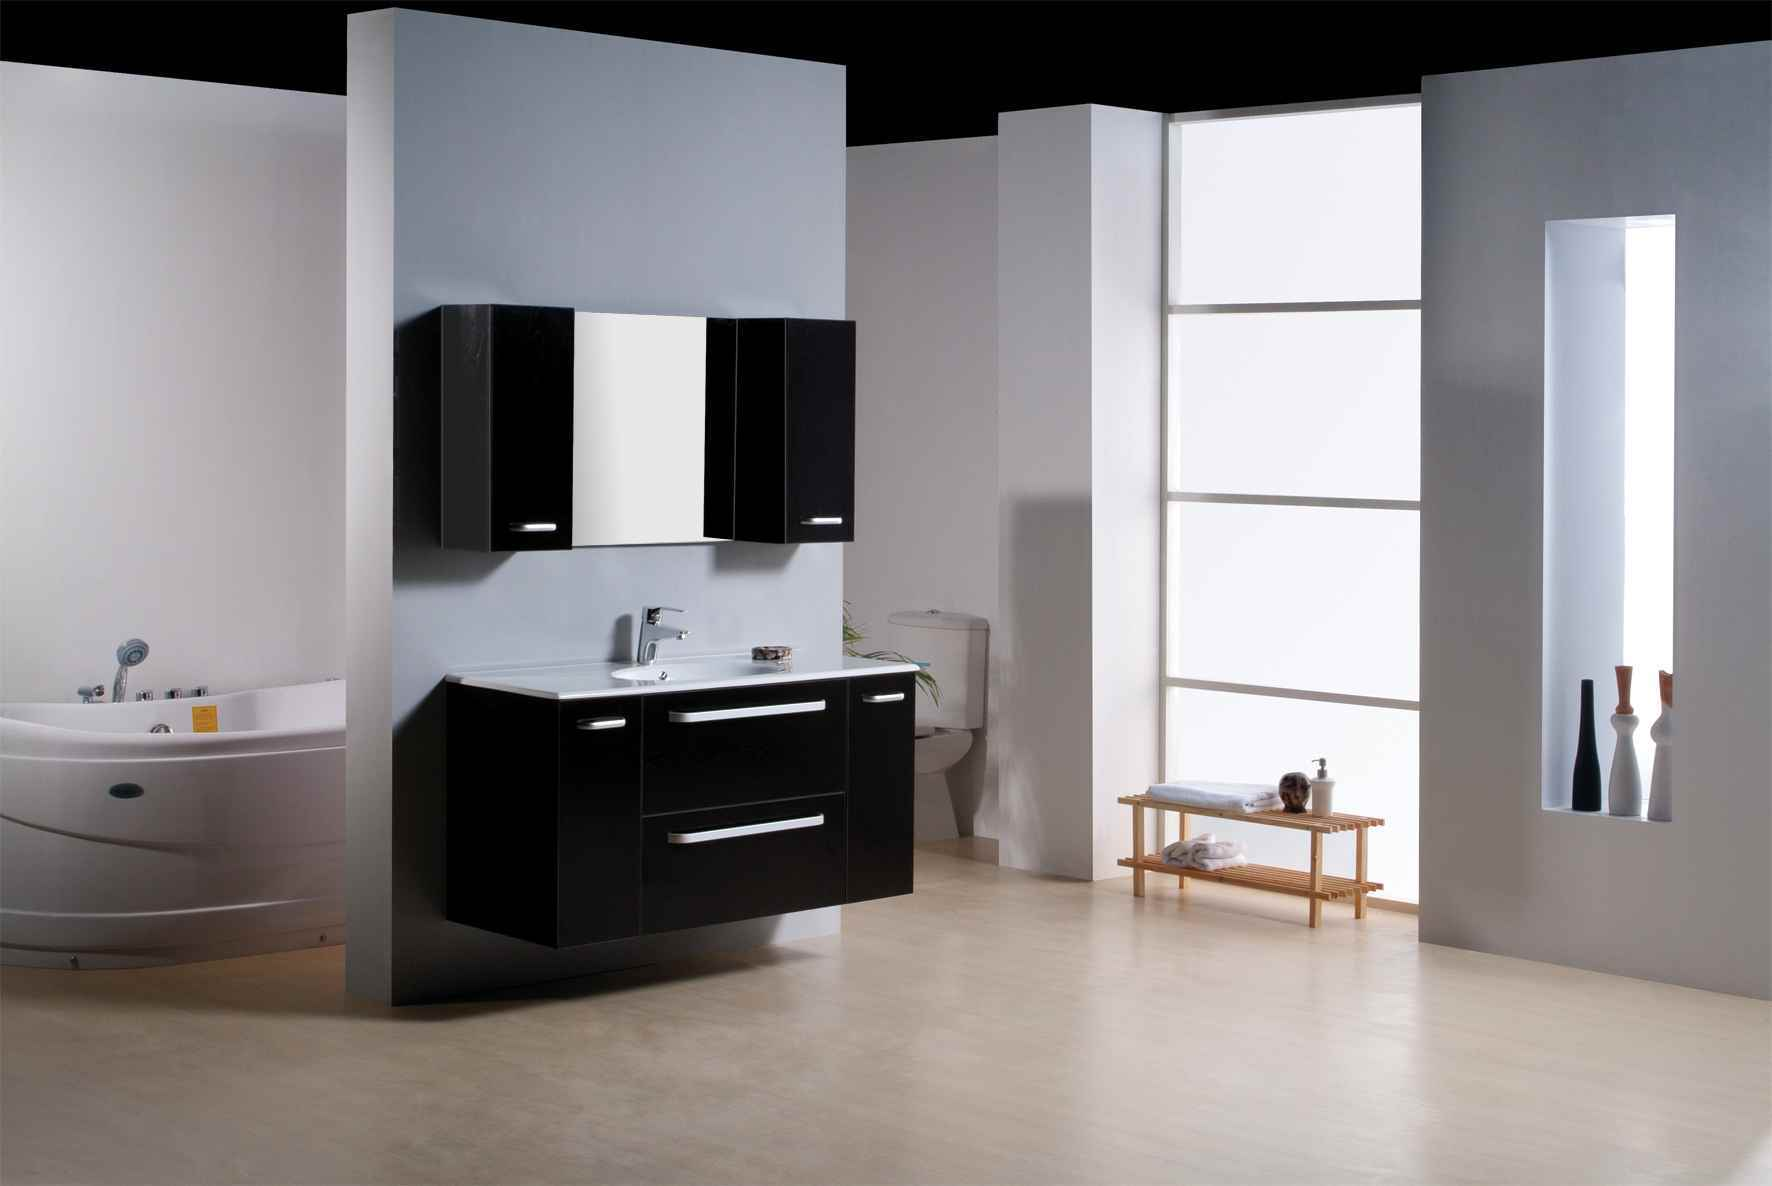 China new design bathroom cabinet china bathroom cabinet for Bathroom furniture design ideas